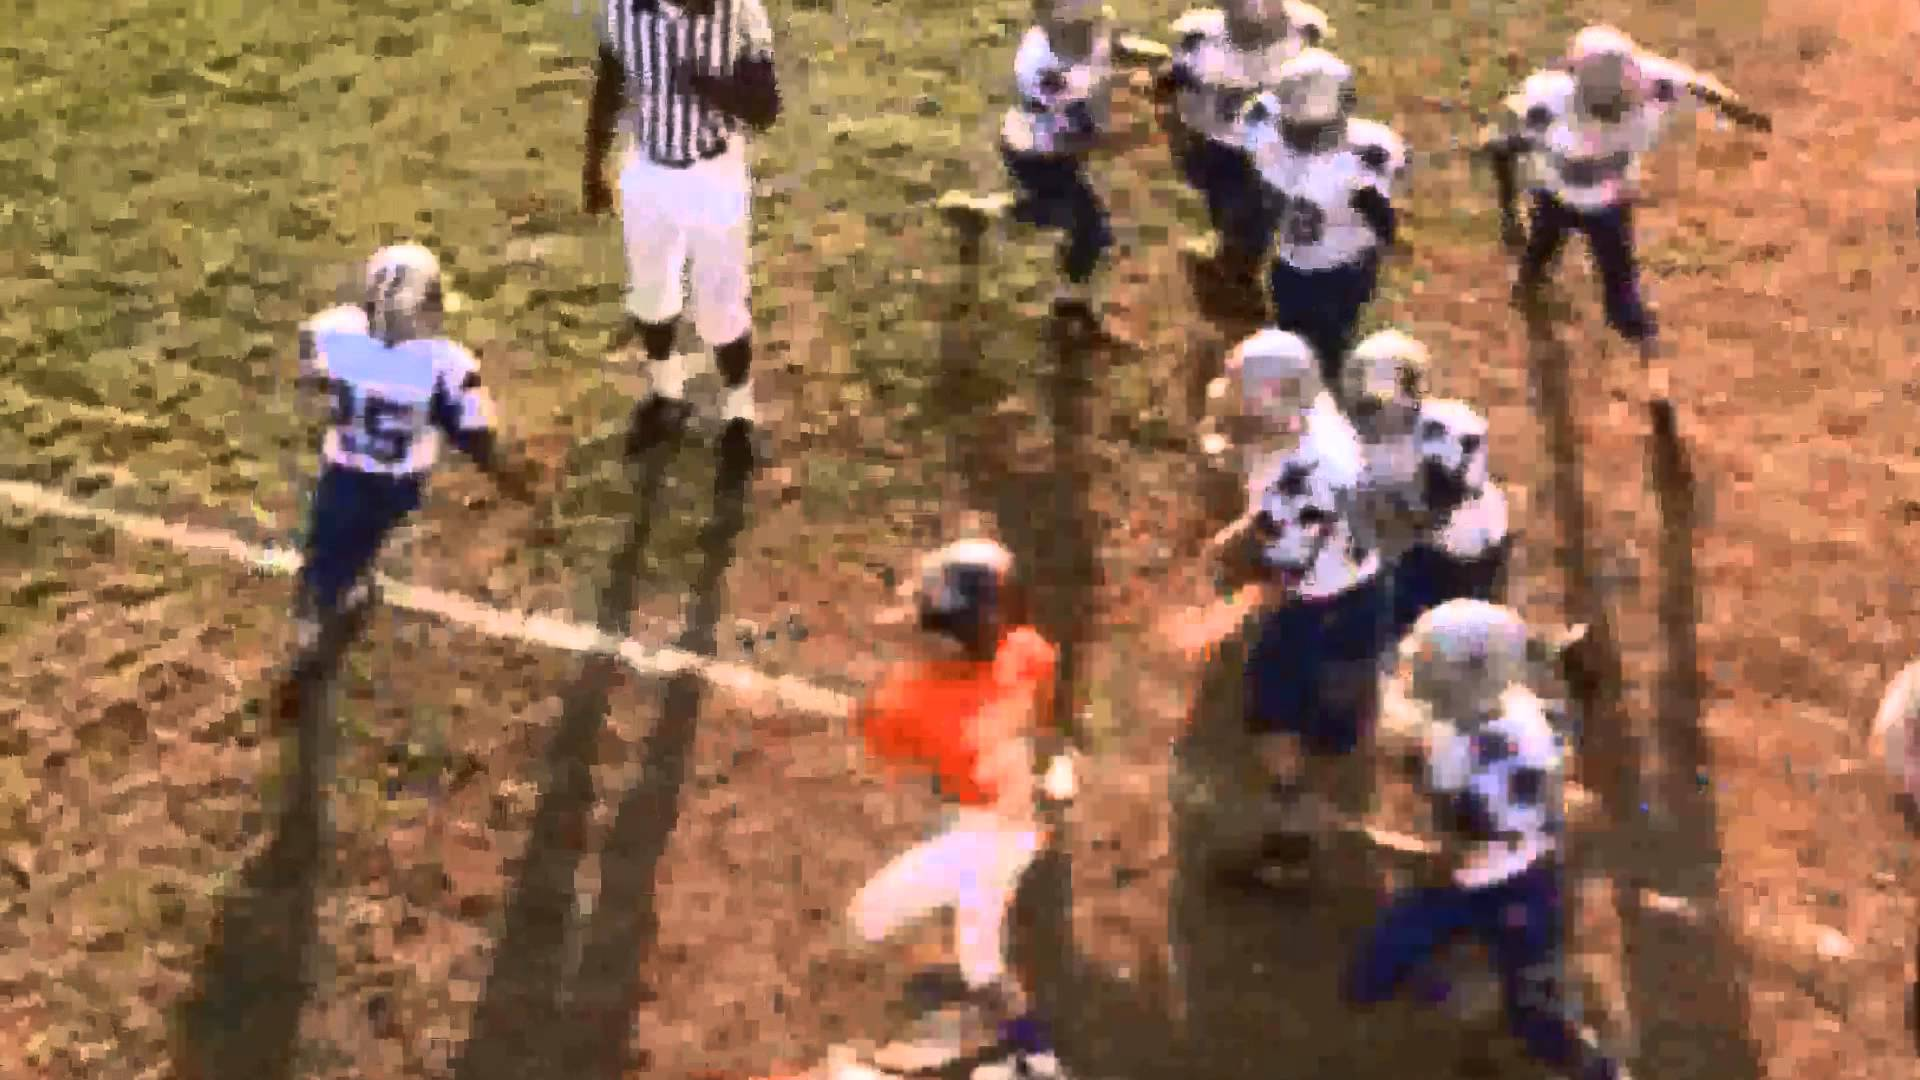 Little Giants - Blow the whistle! - YouTube